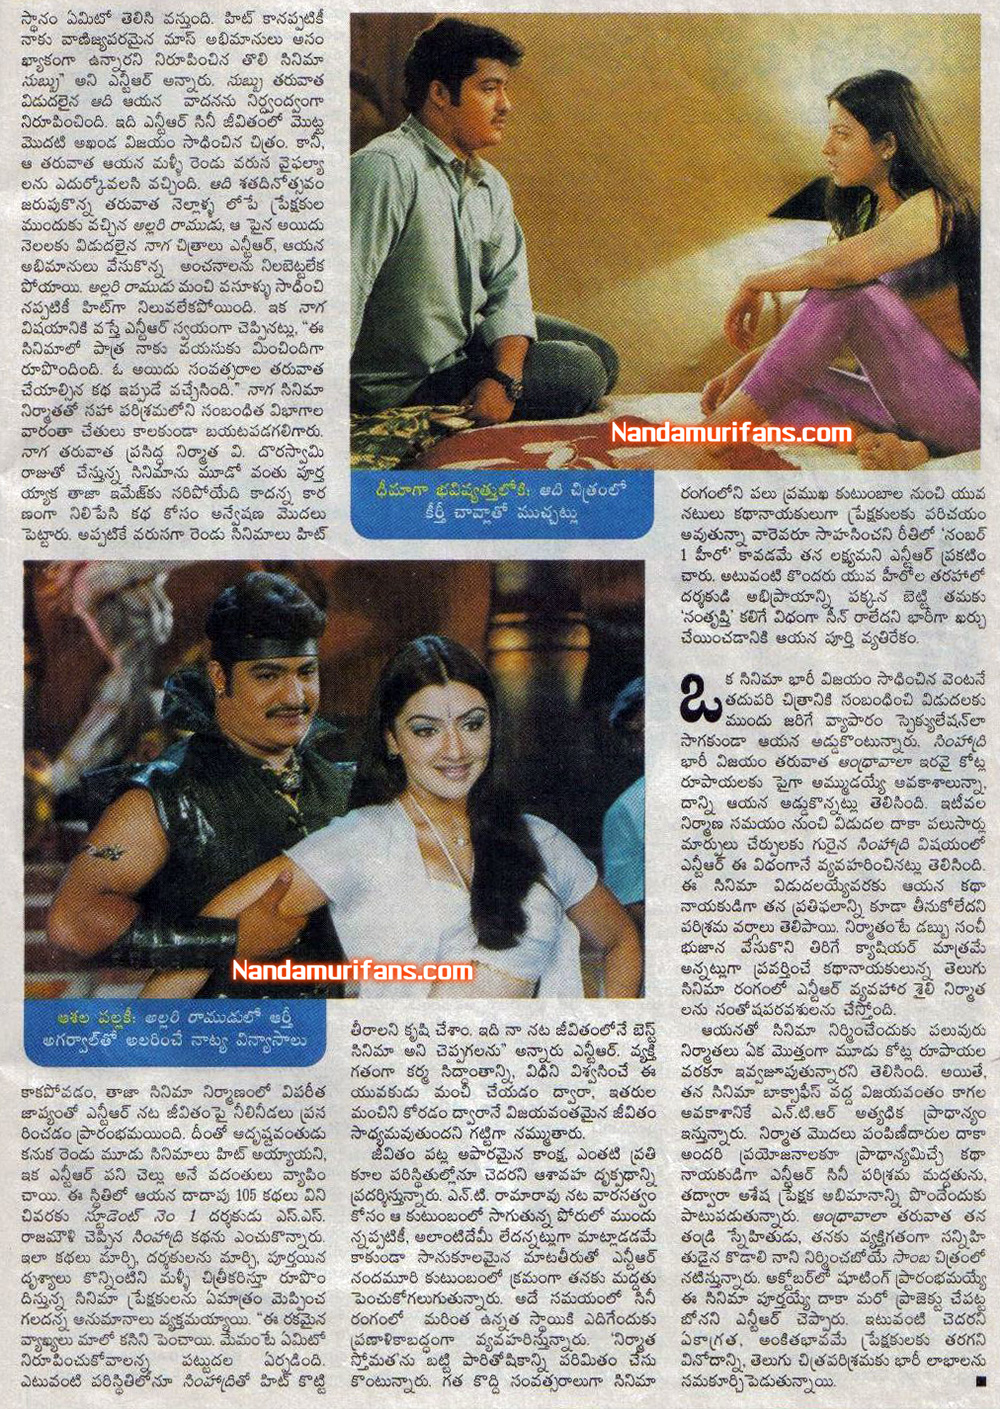 Indiatoday mainicle on NTR Jr. -6